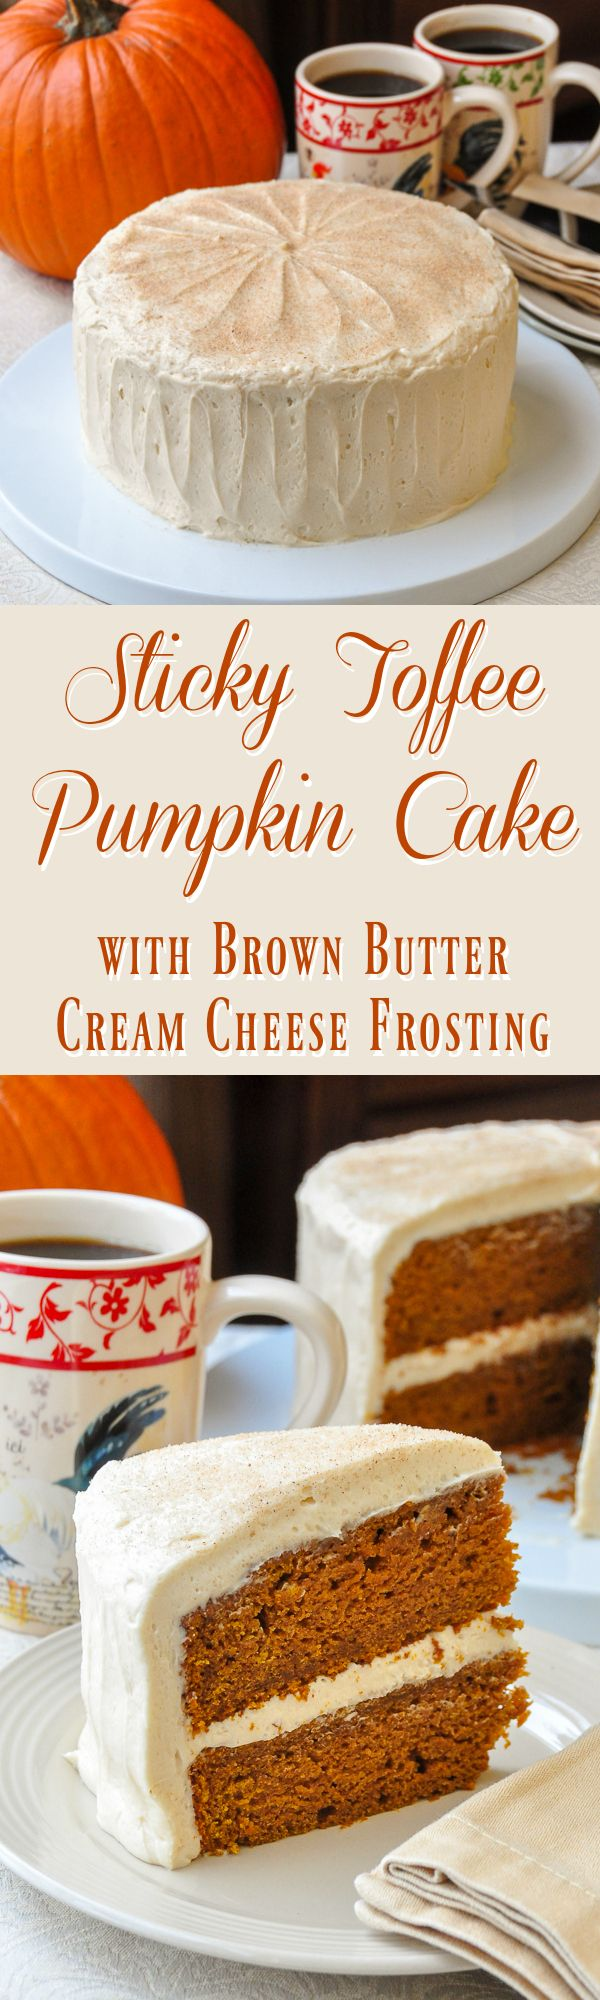 Sticky Toffee Pumpkin Cake with Brown Butter Cream Cheese Frosting - inspired by a favourite English dessert. Made this with this year's decorative pumpkin. SO so good!